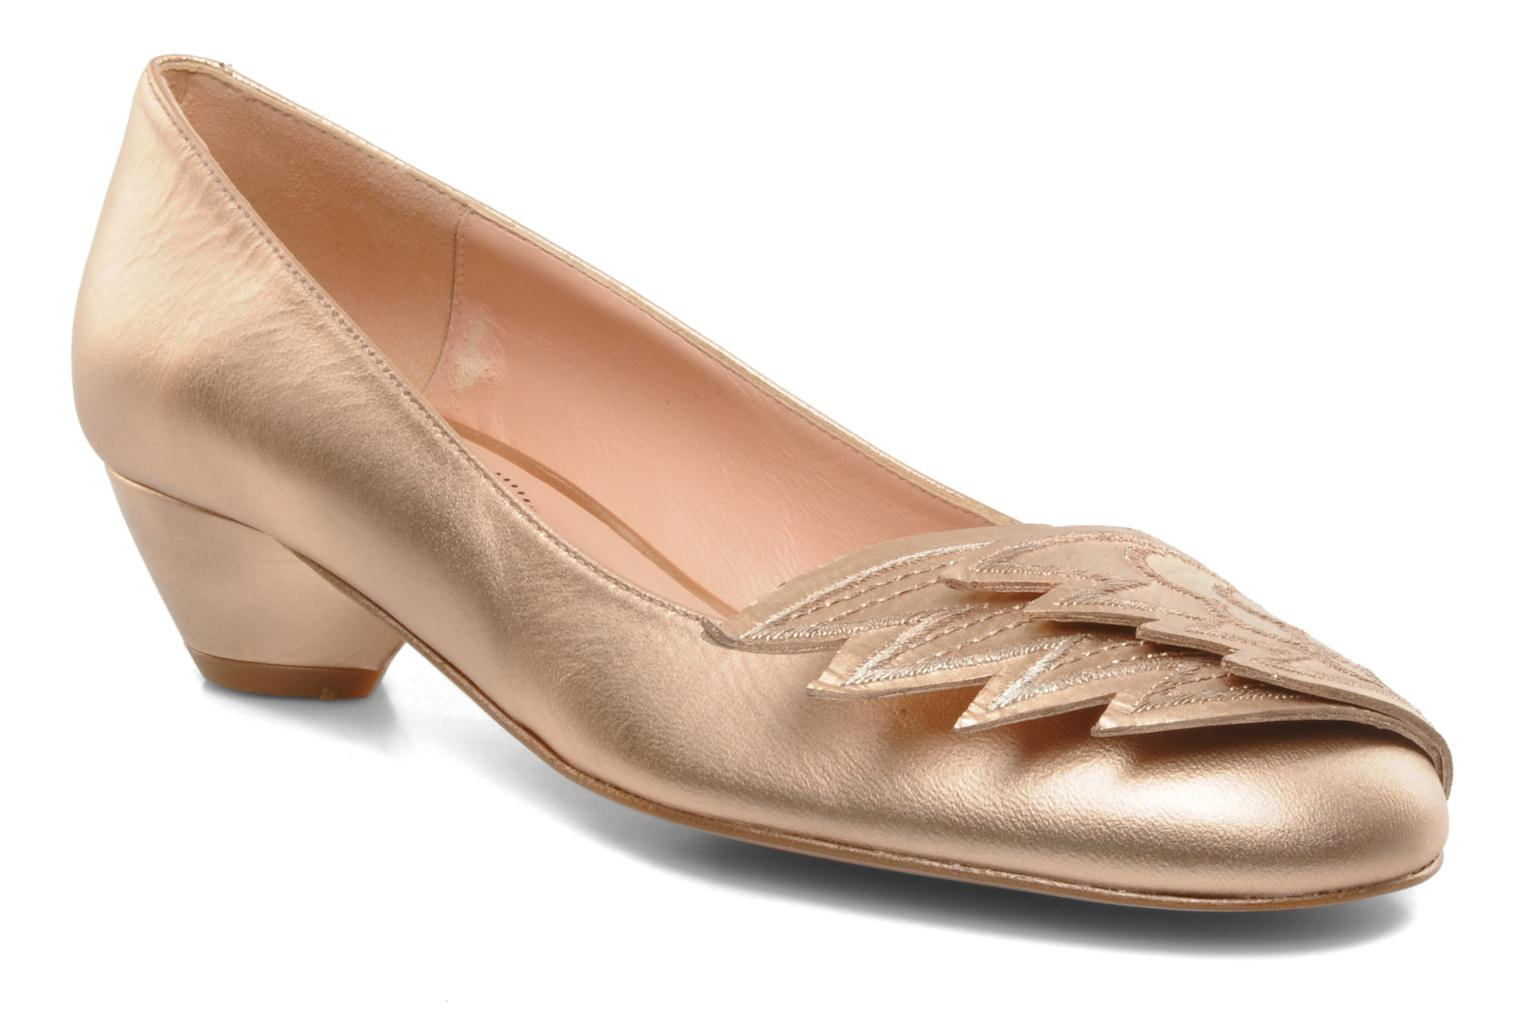 EDITH LOW POWDER PEACH METALLIC LEATHER